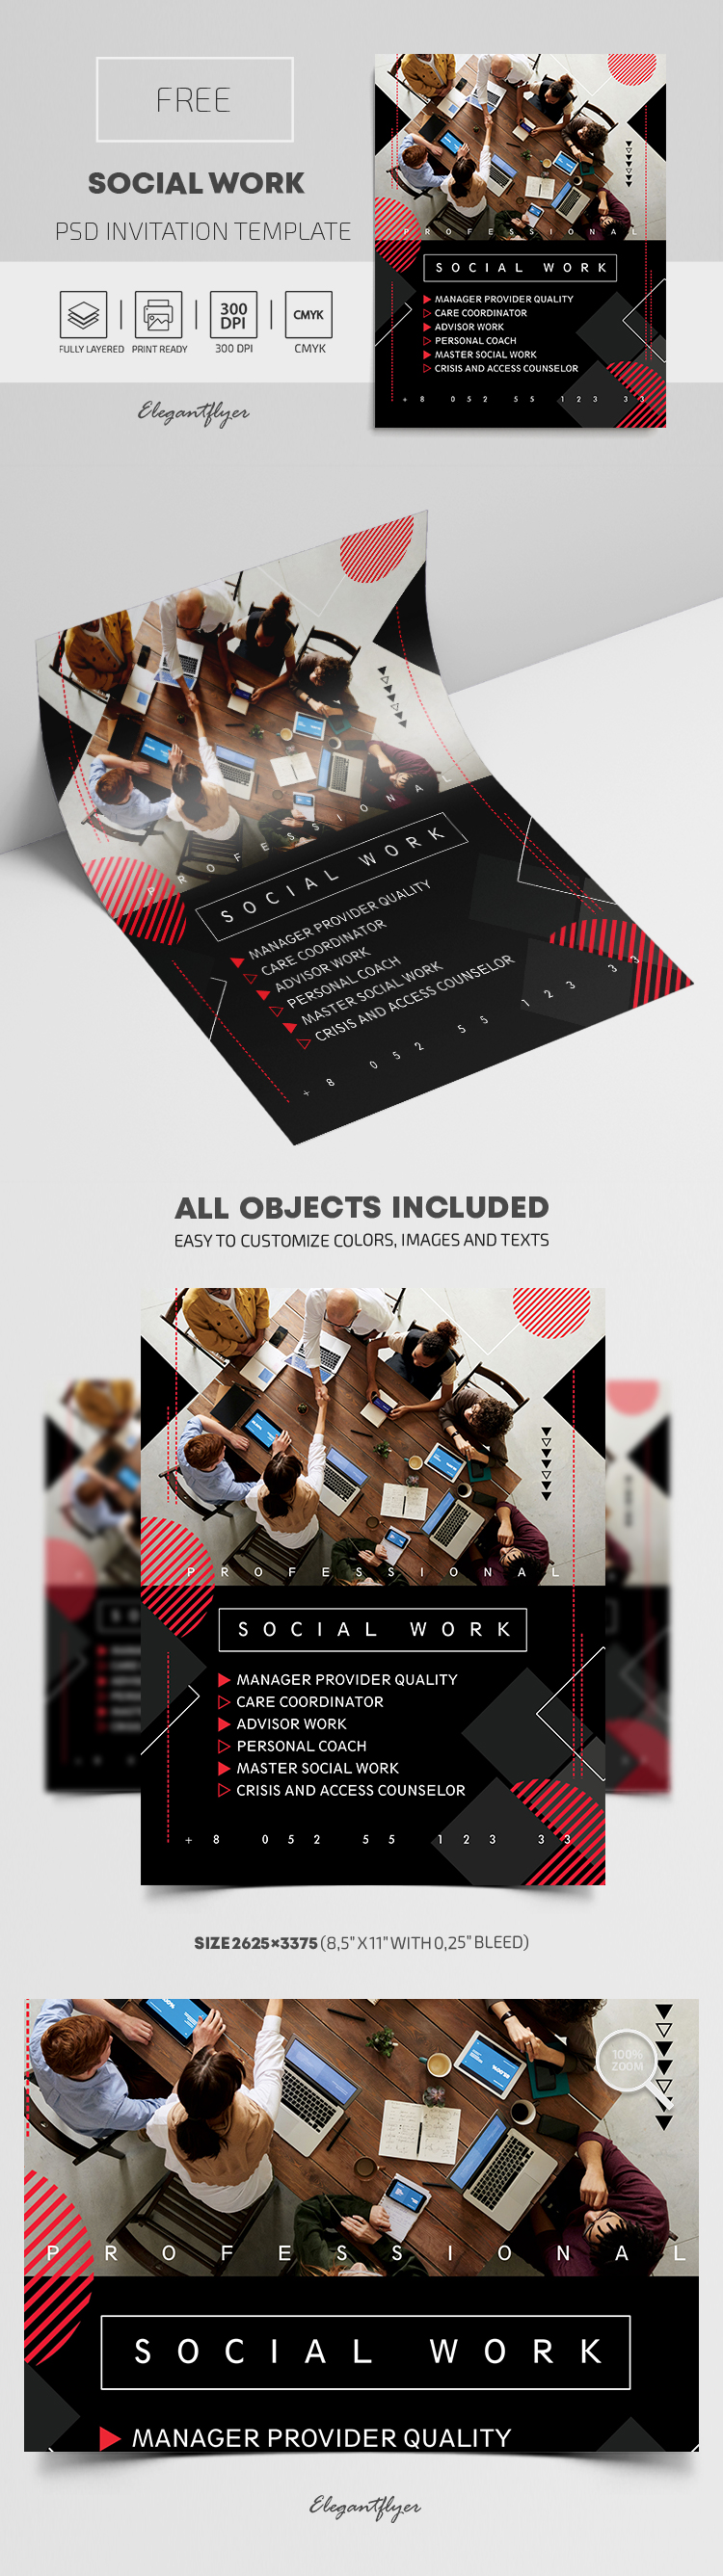 Social Work – Free PSD Invitation Template